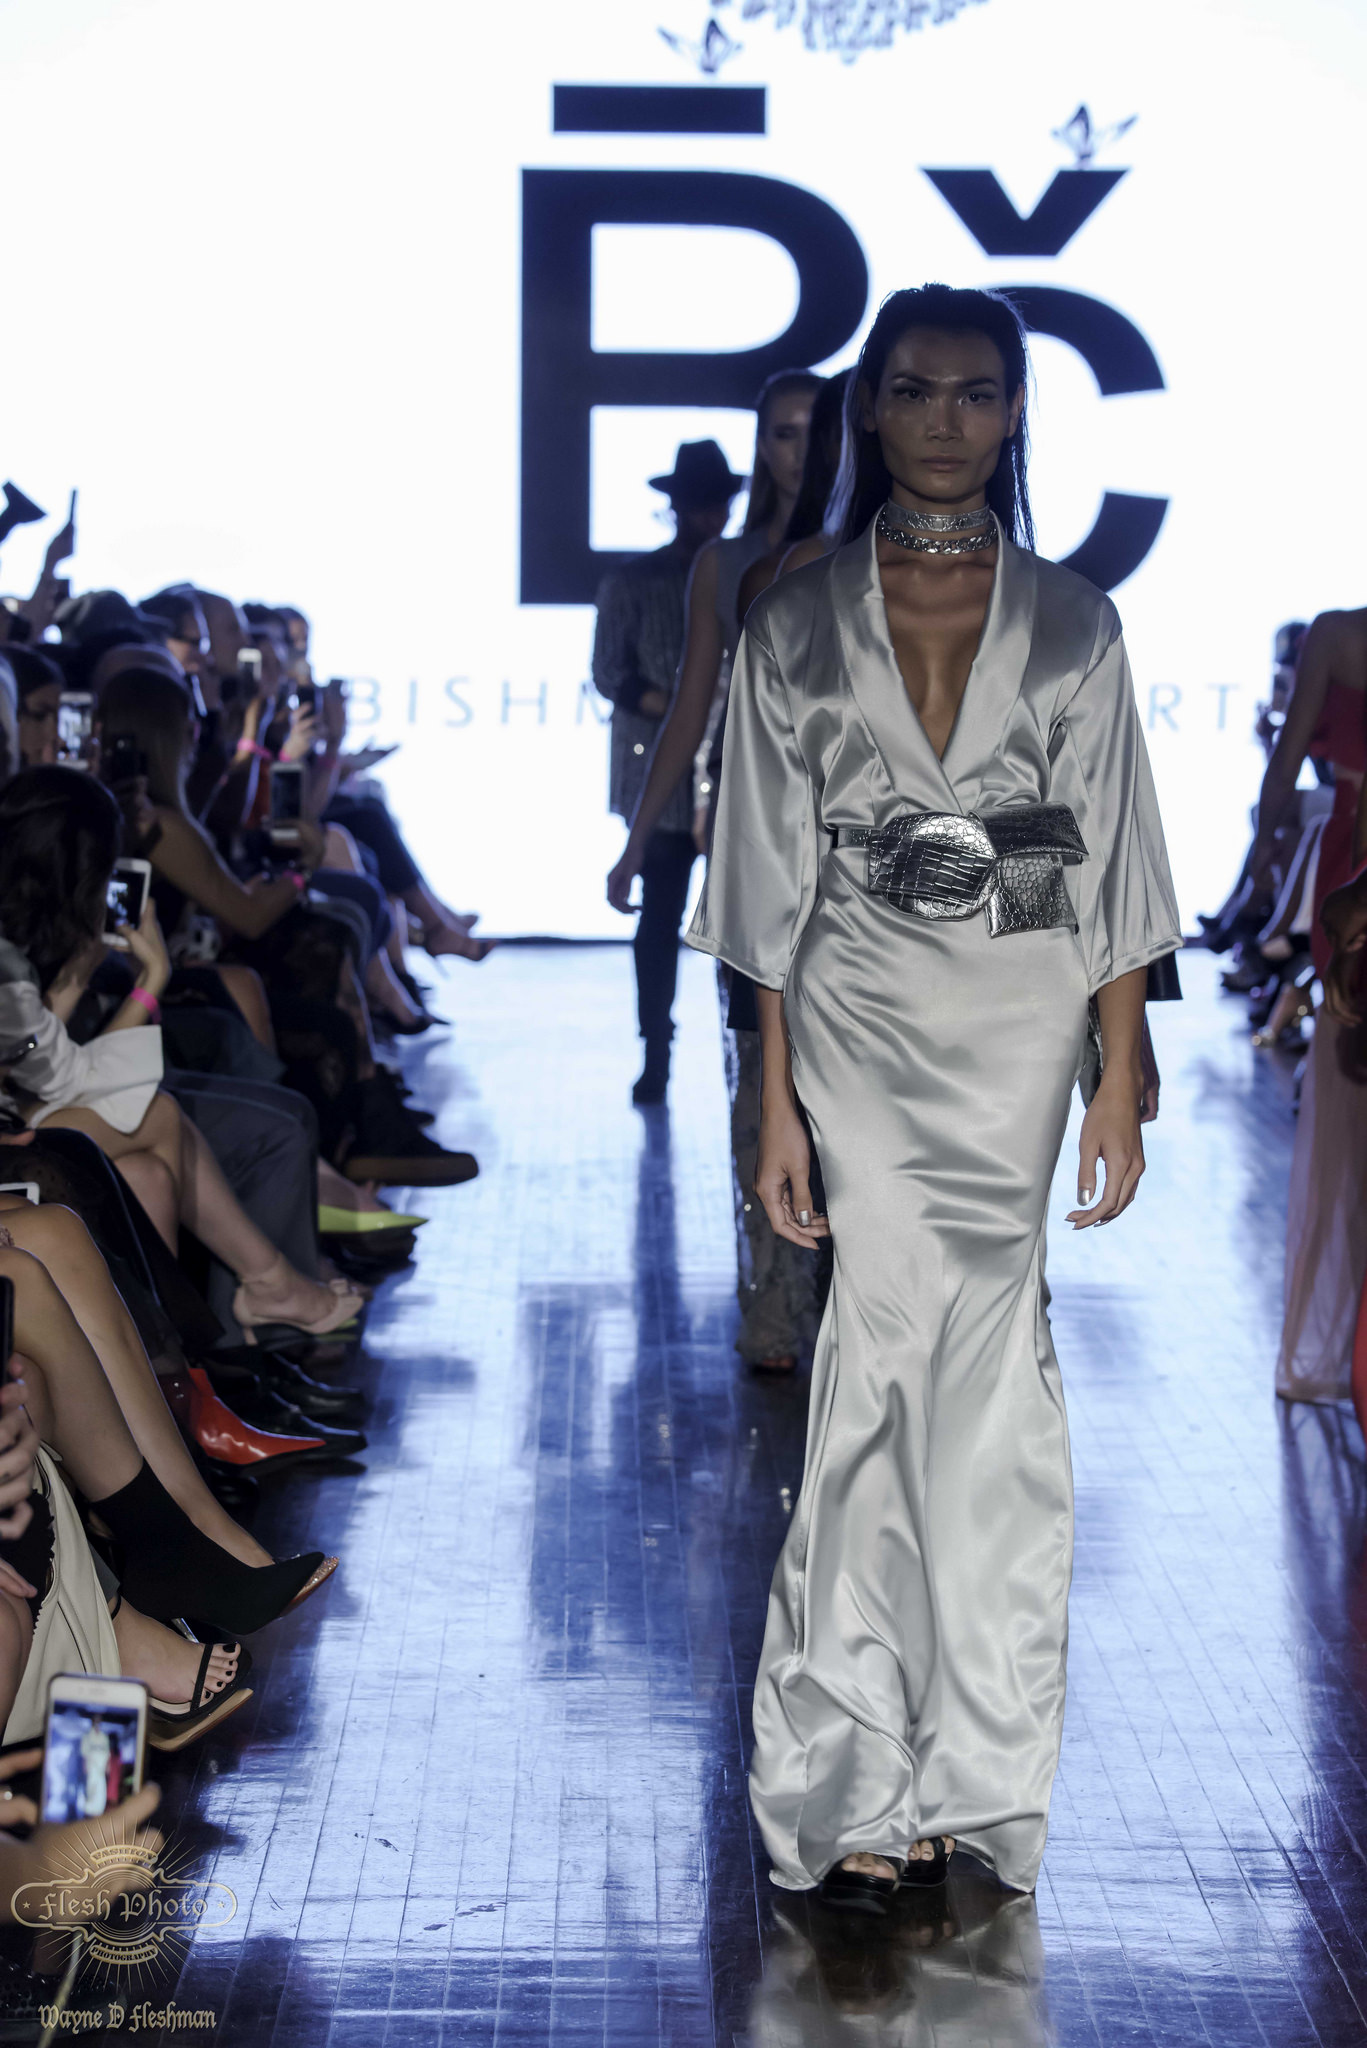 Photo: Wayne D. Fleshman | LA Fashion Week